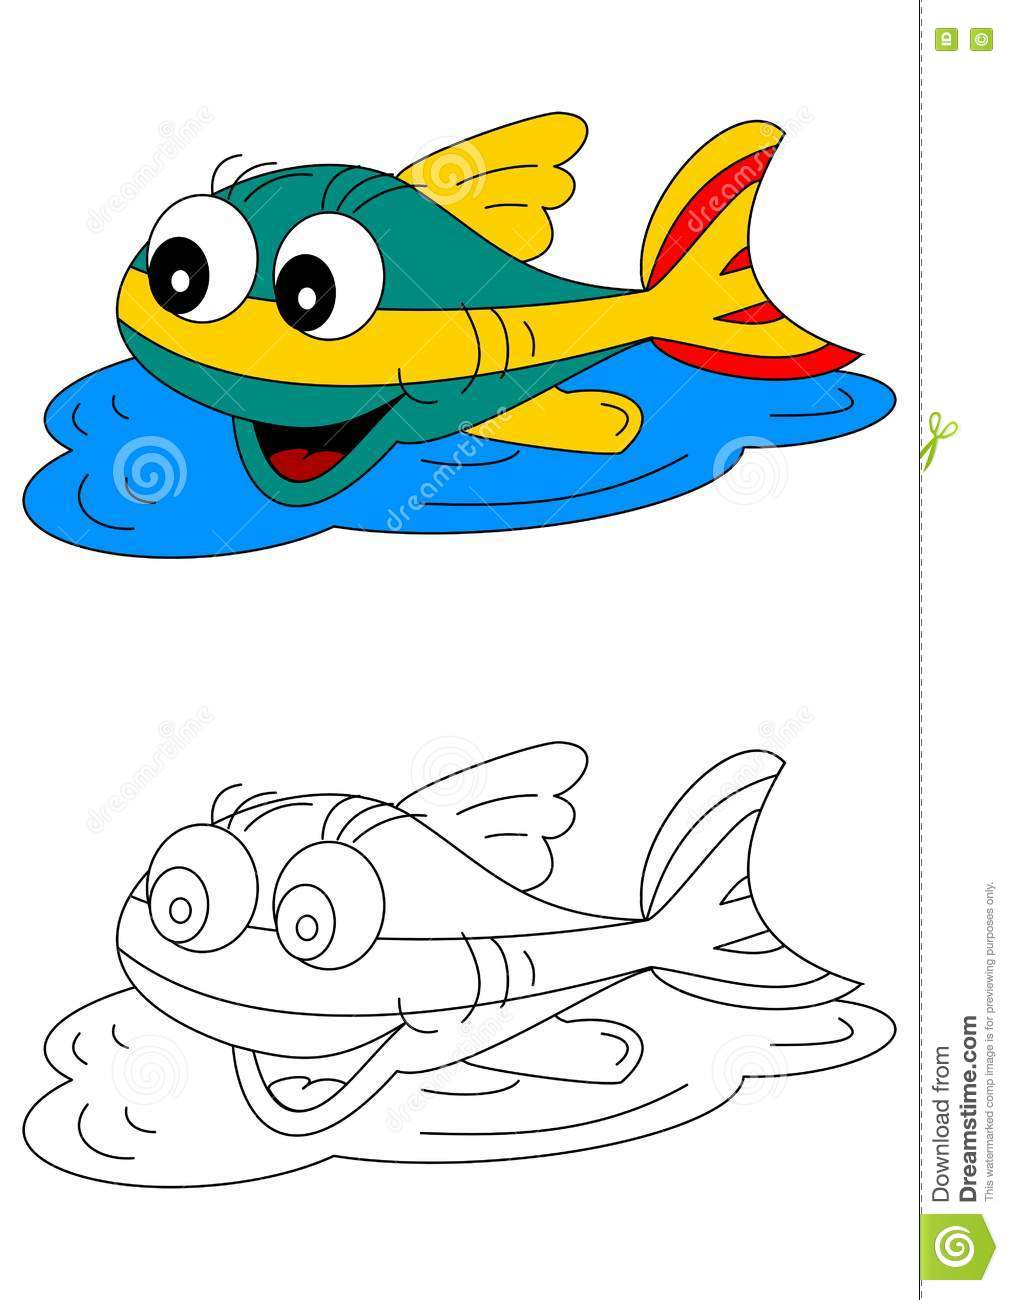 book children coloring fish - Colorful Fish Book